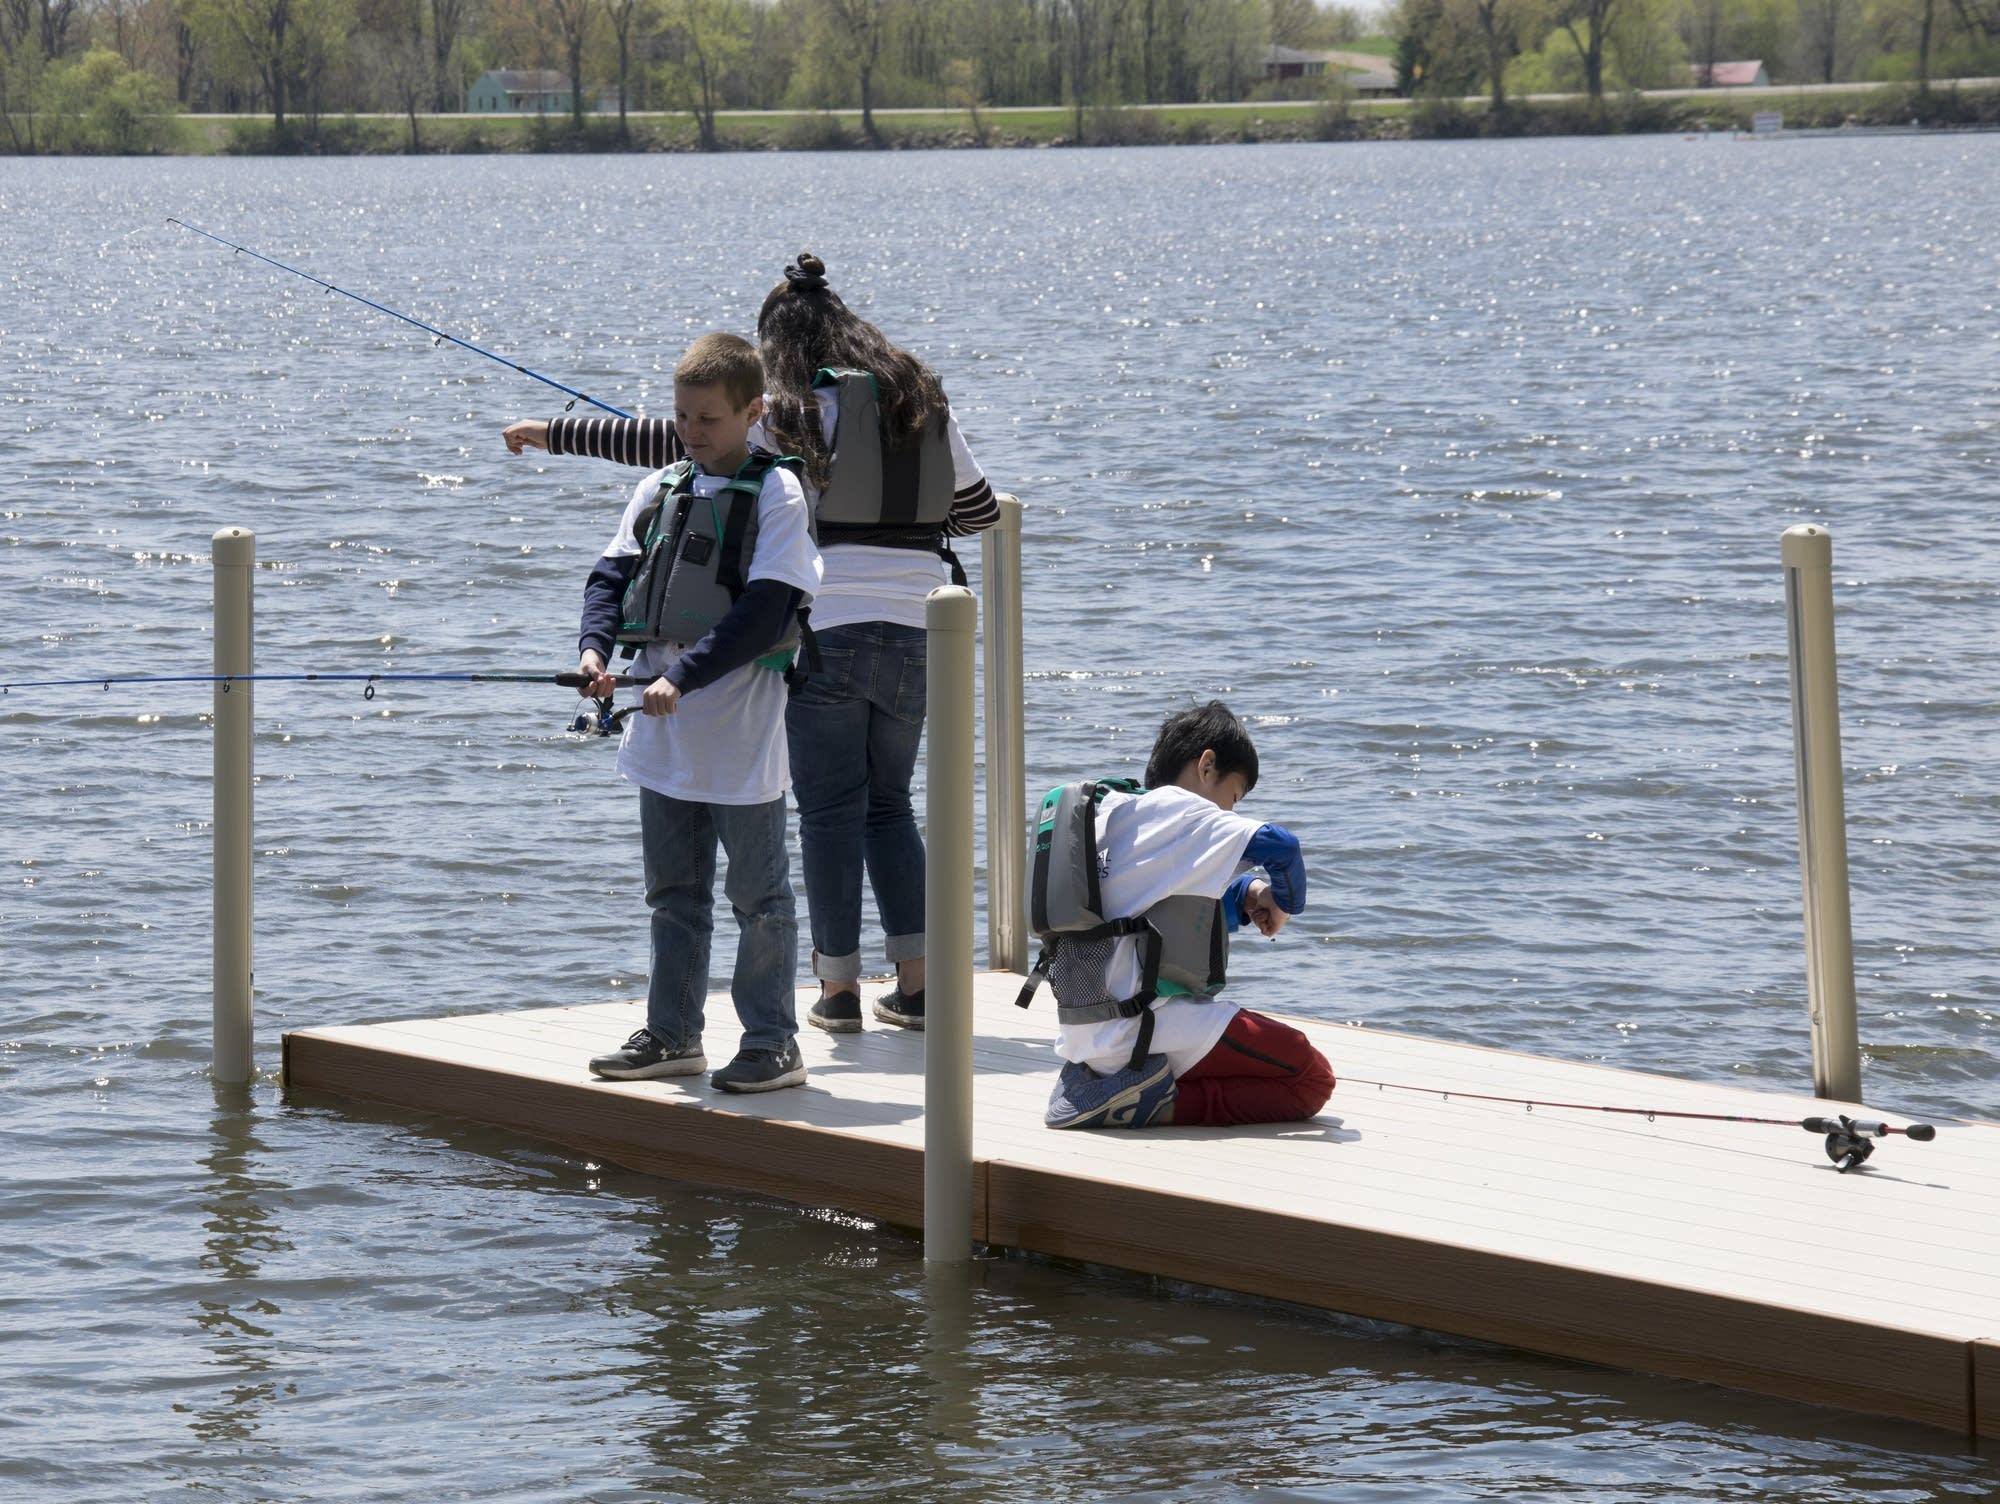 Young anglers learn how to fish at the kids' fishing event in Albert Lea.